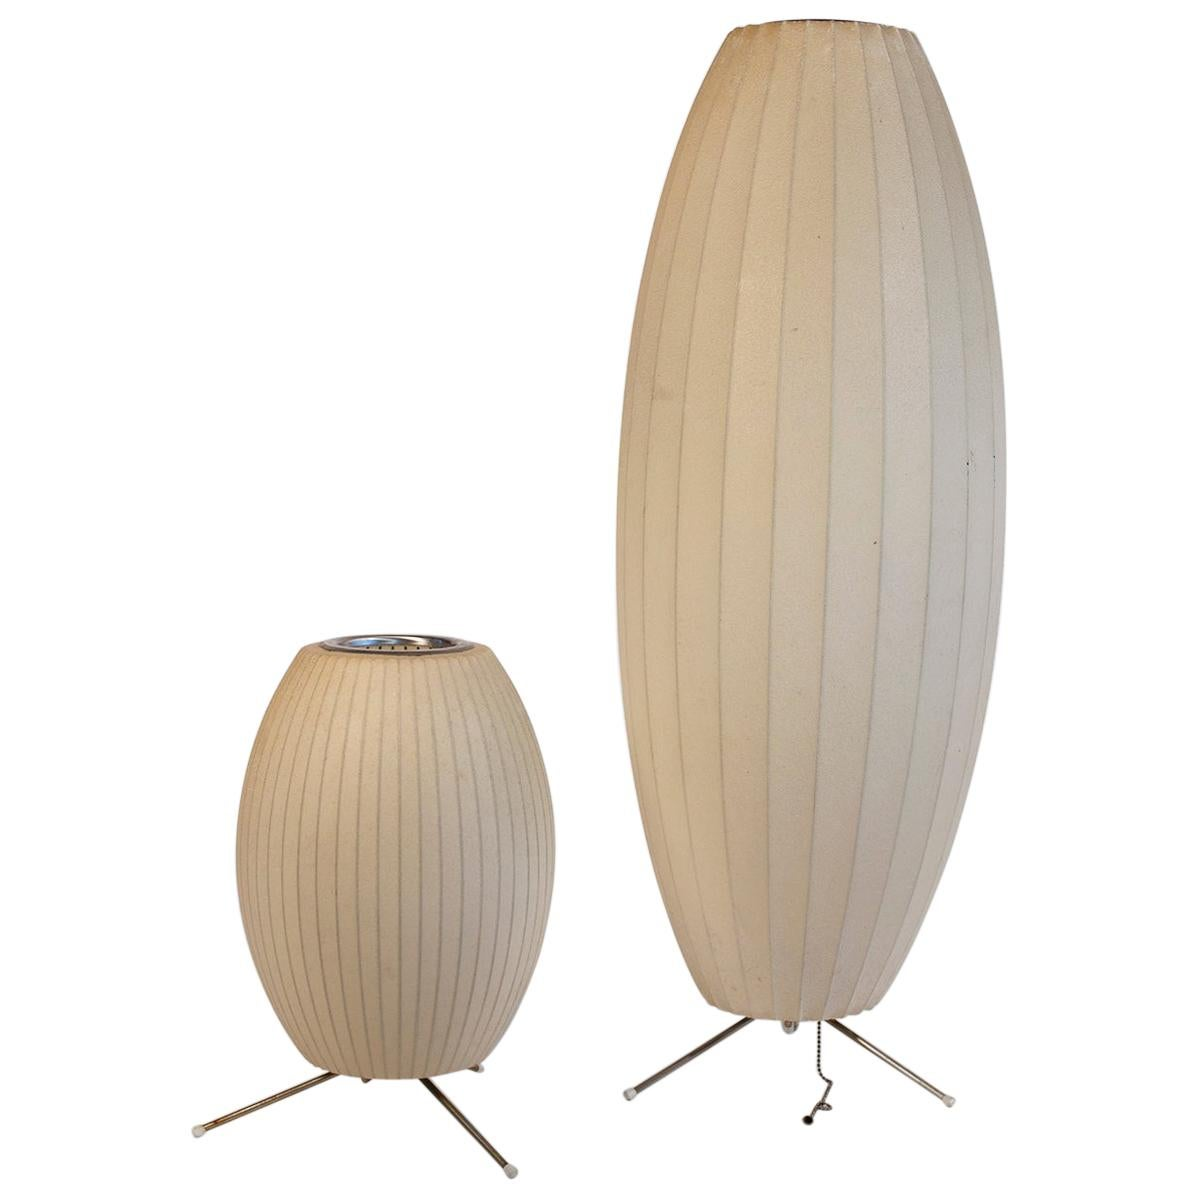 George Nelson Cigar Tripod Bubble Lamps for Howard Miller Vintage, Pair